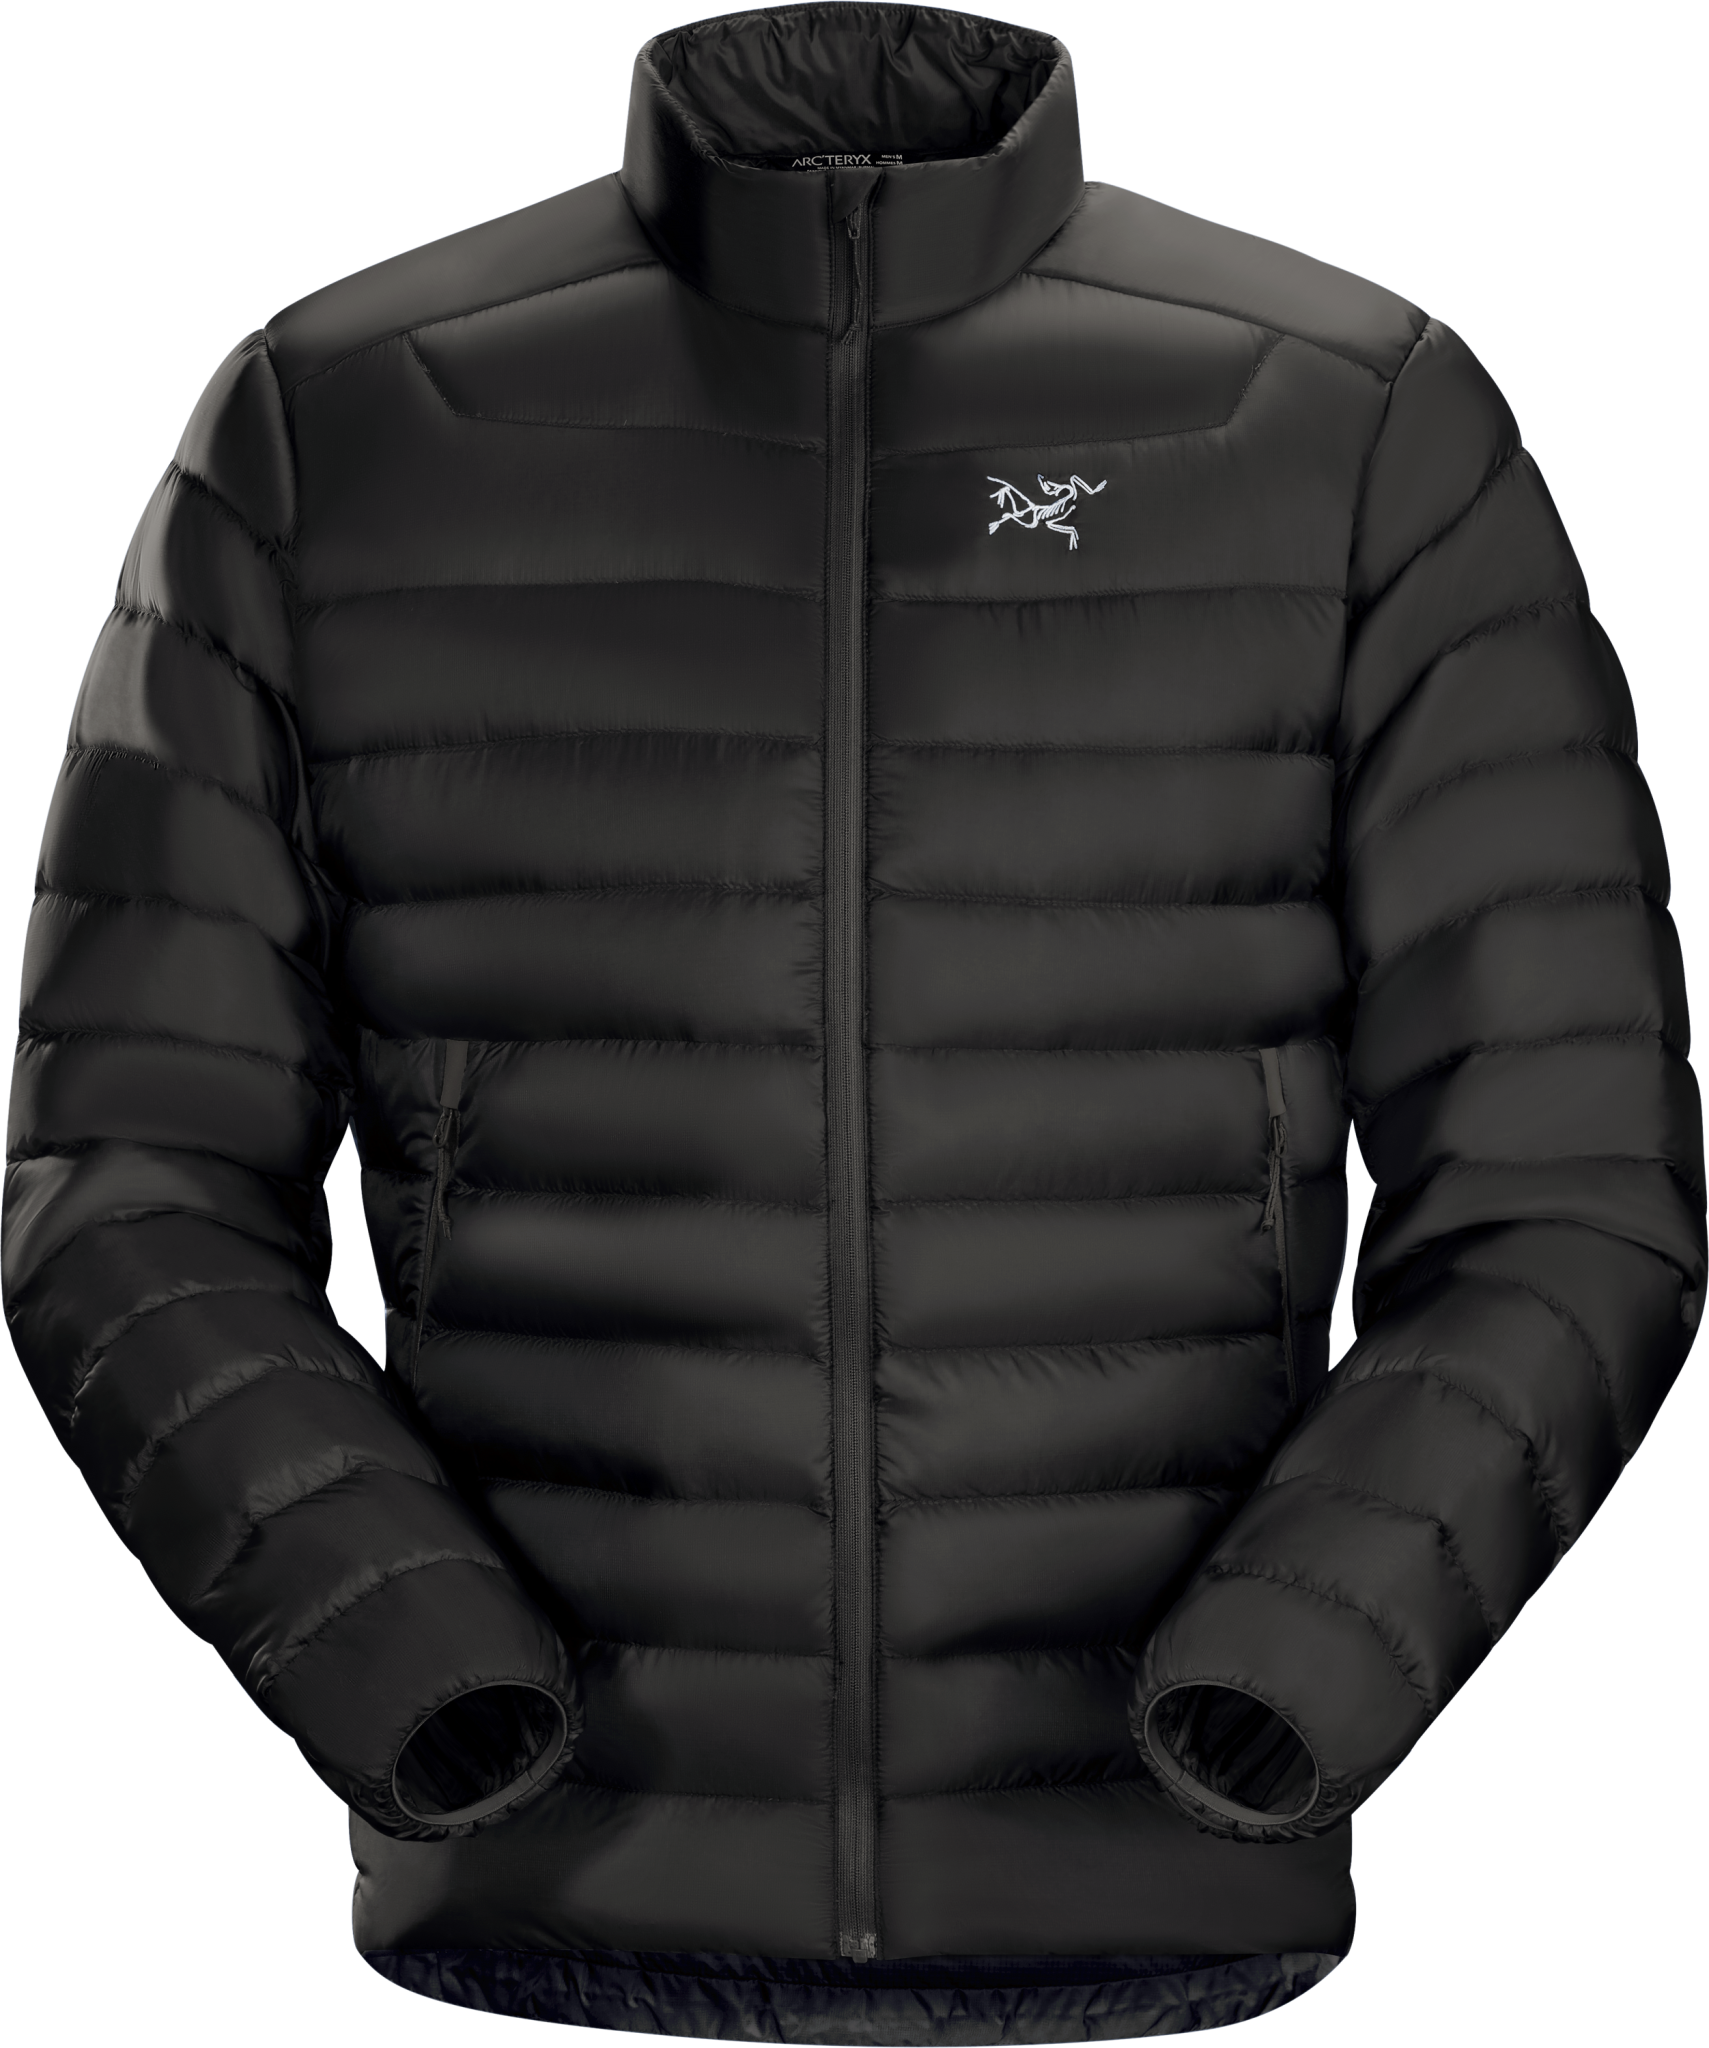 Arc'teryx Cerium LT Jacket Men's-1